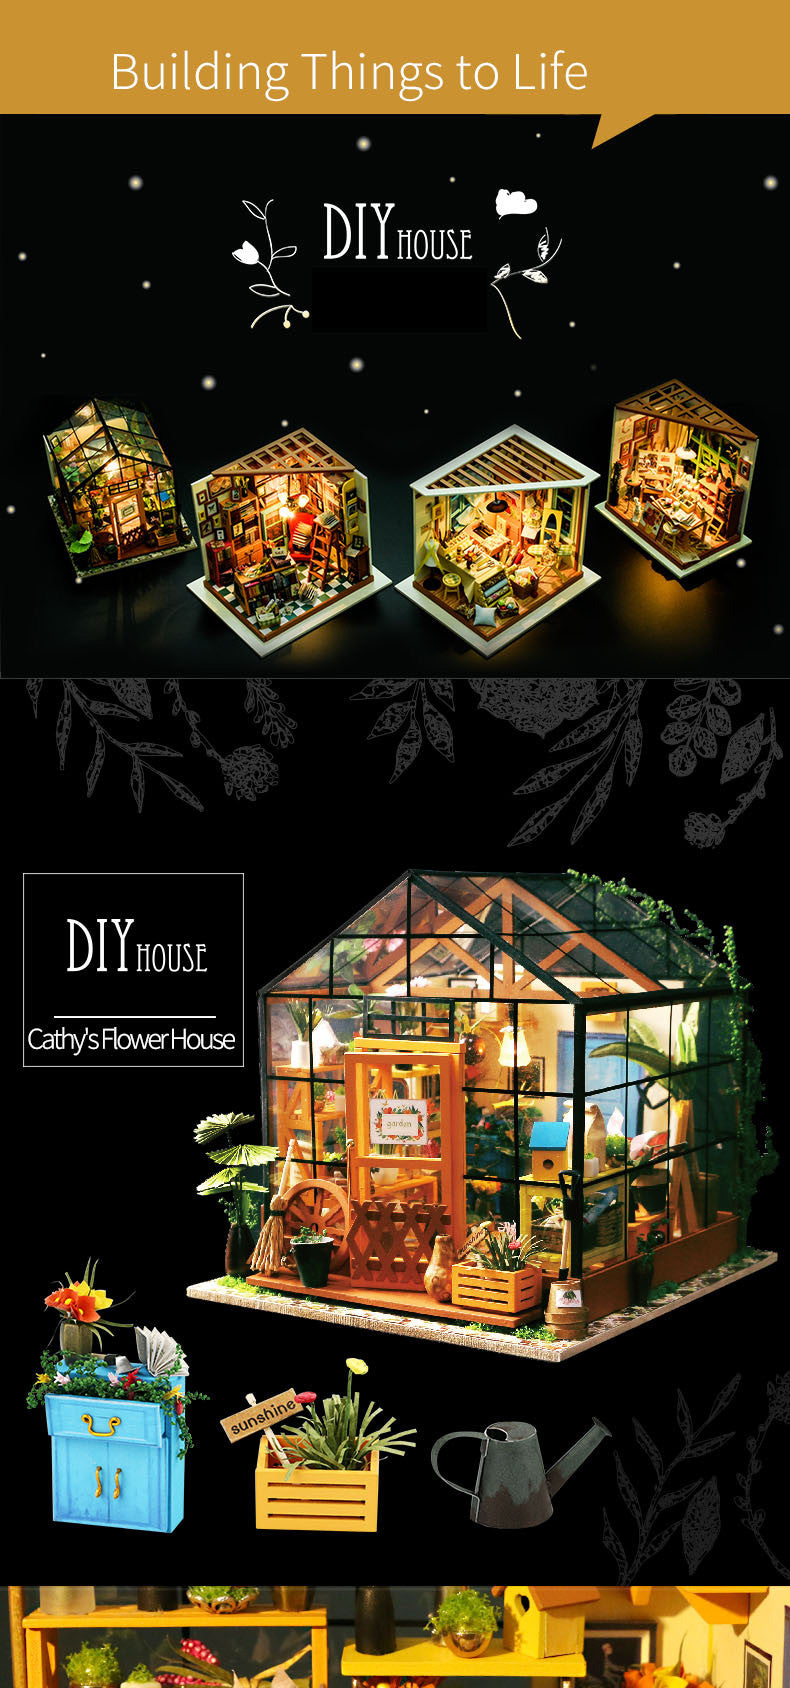 Cathy's Flower Robotime DG104 DIY House Kit